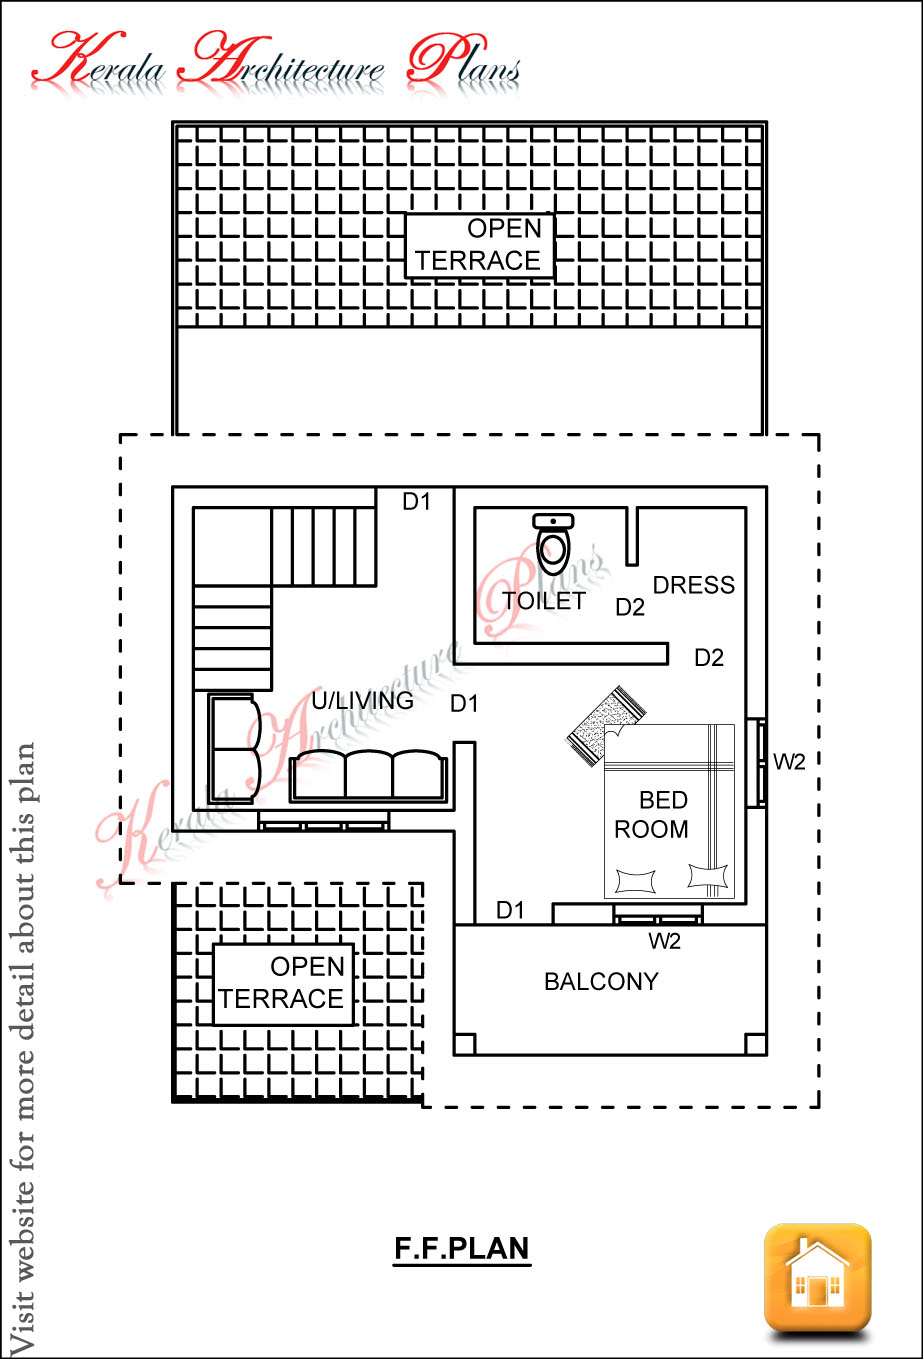 3 bedroom house plan in 1200 square feet architecture kerala for Kerala home plans 1200 sq ft